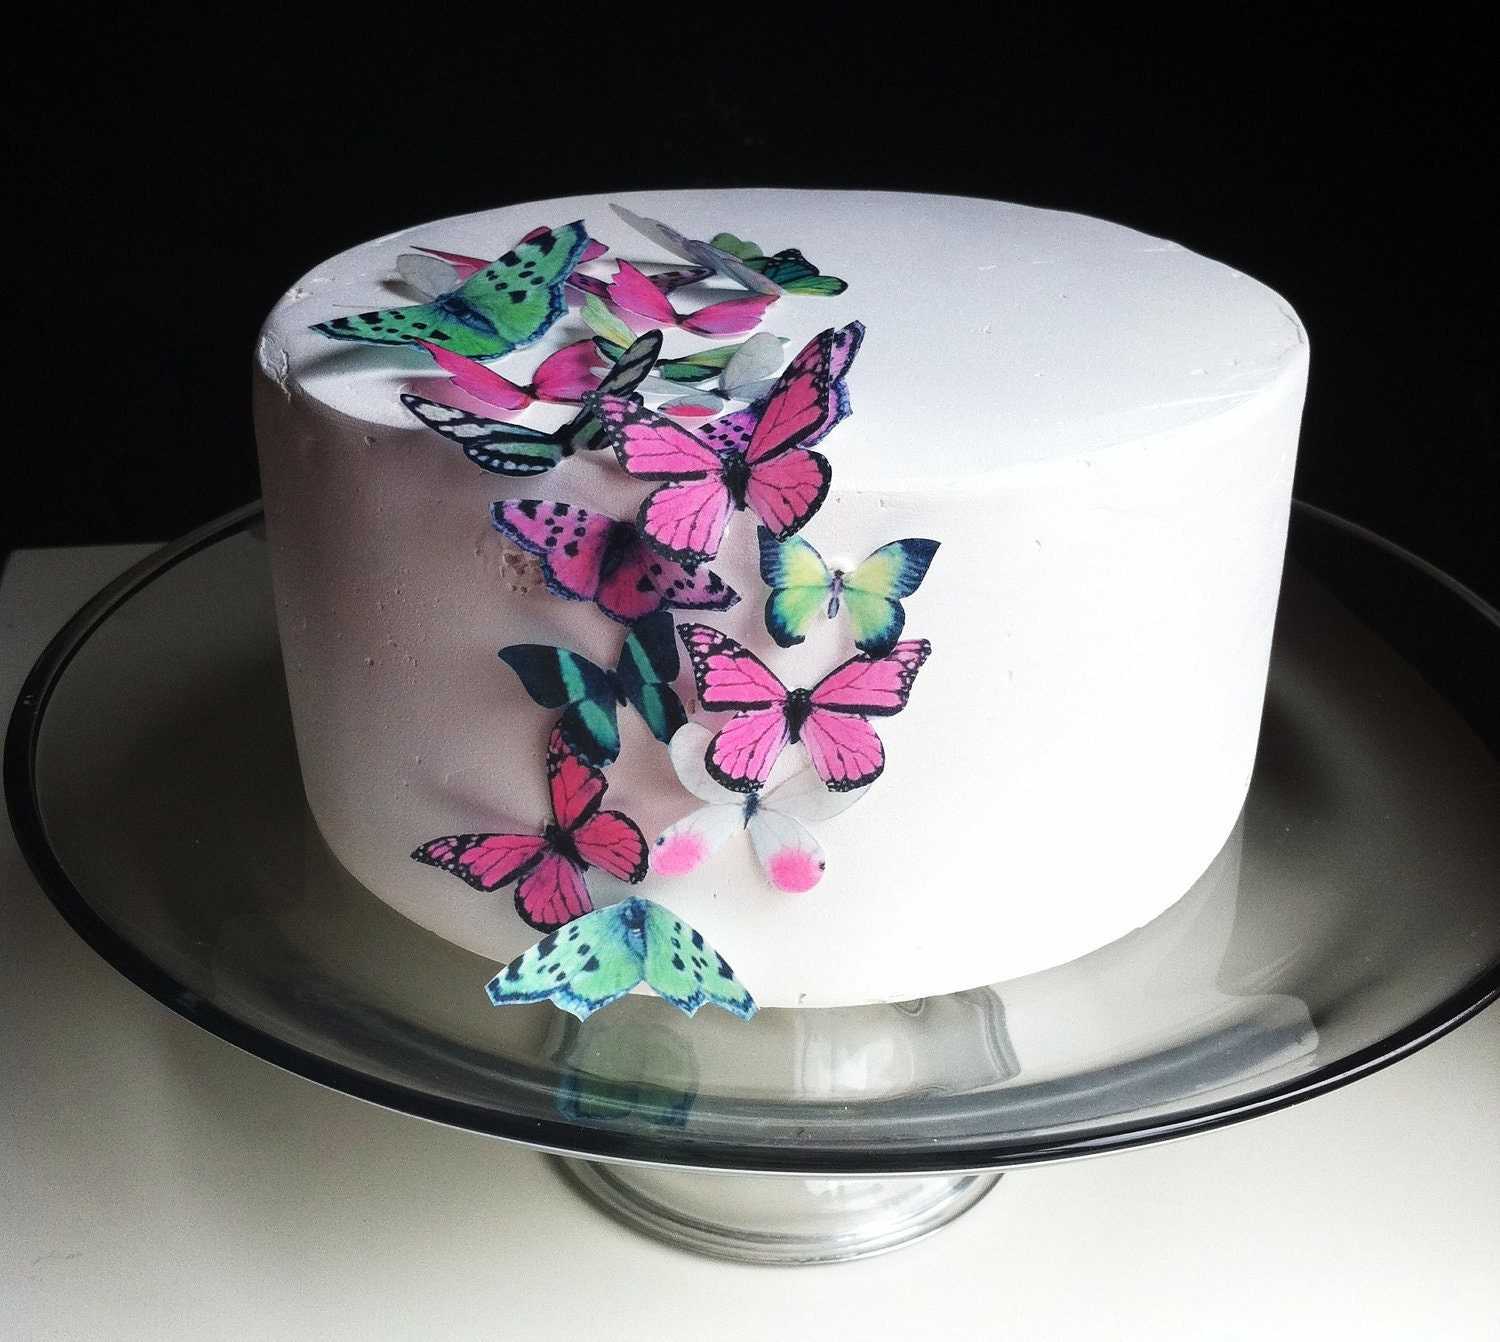 edible wedding cake decals edible butterfly cake decorations 24 green and pink edible 13917